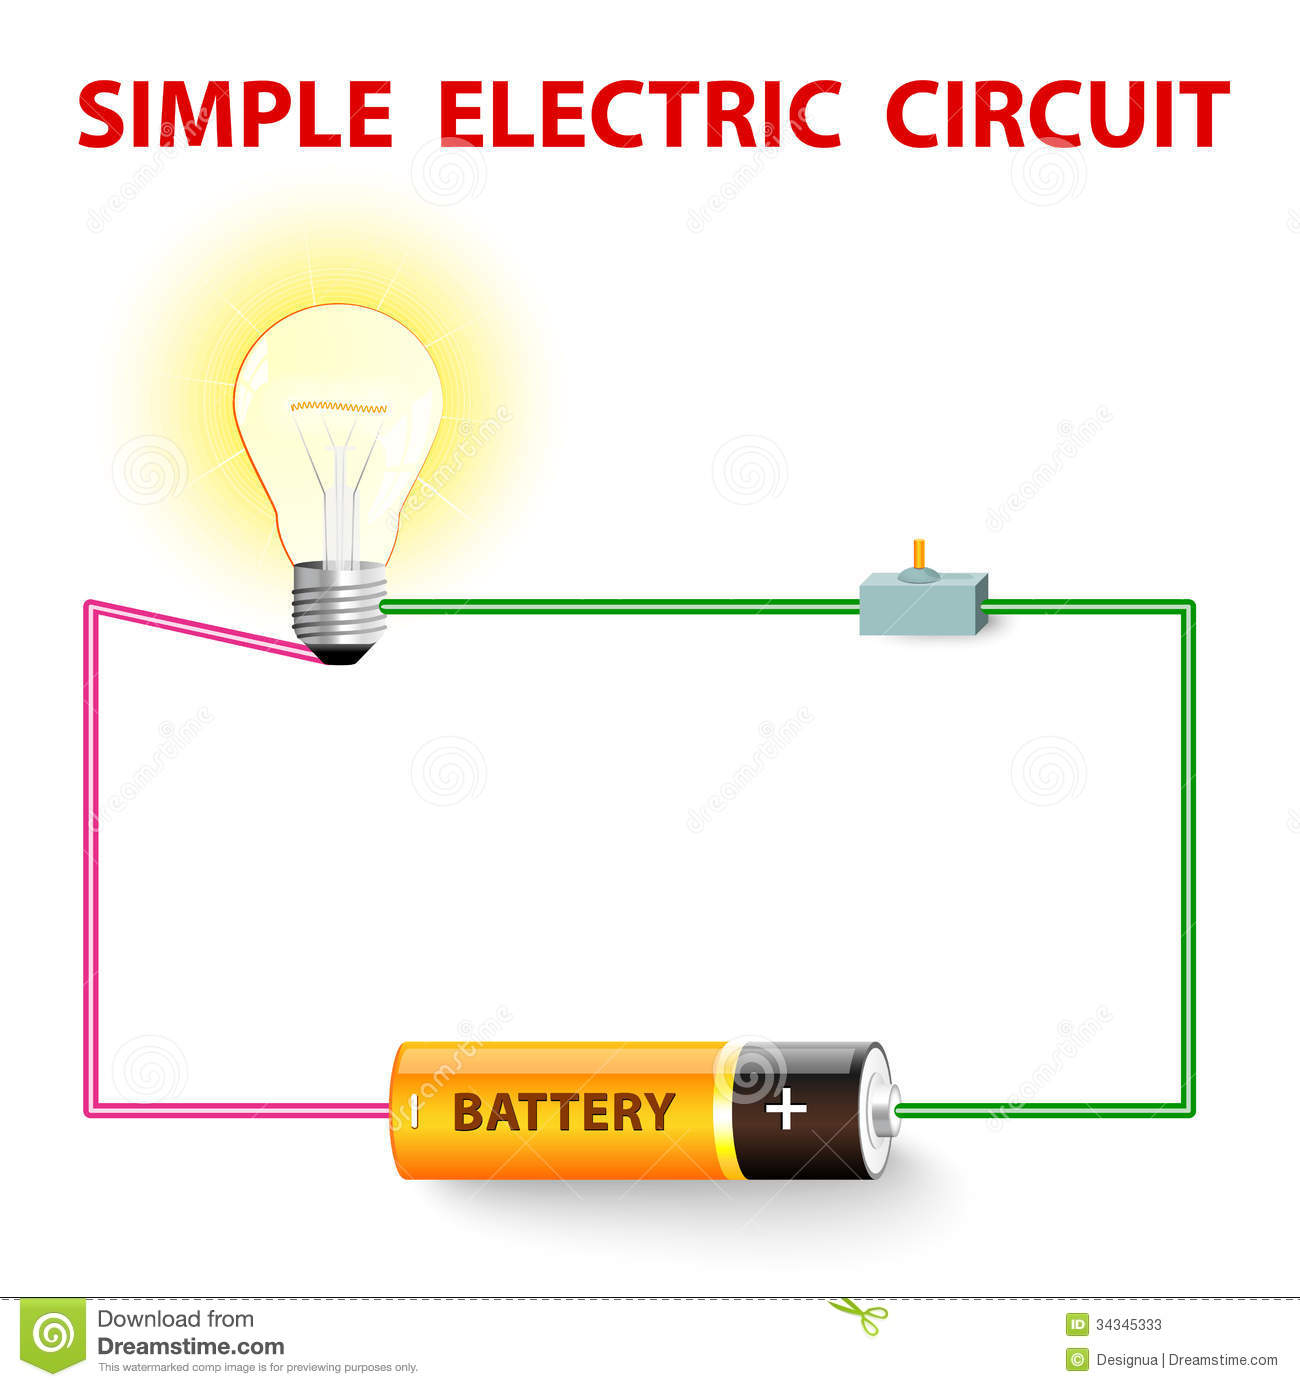 A Simple Electric Circuit Stock Vector Illustration Of Closed Wiring Diagram For Switch To Light Electrical Network Bulb Wire And Battery